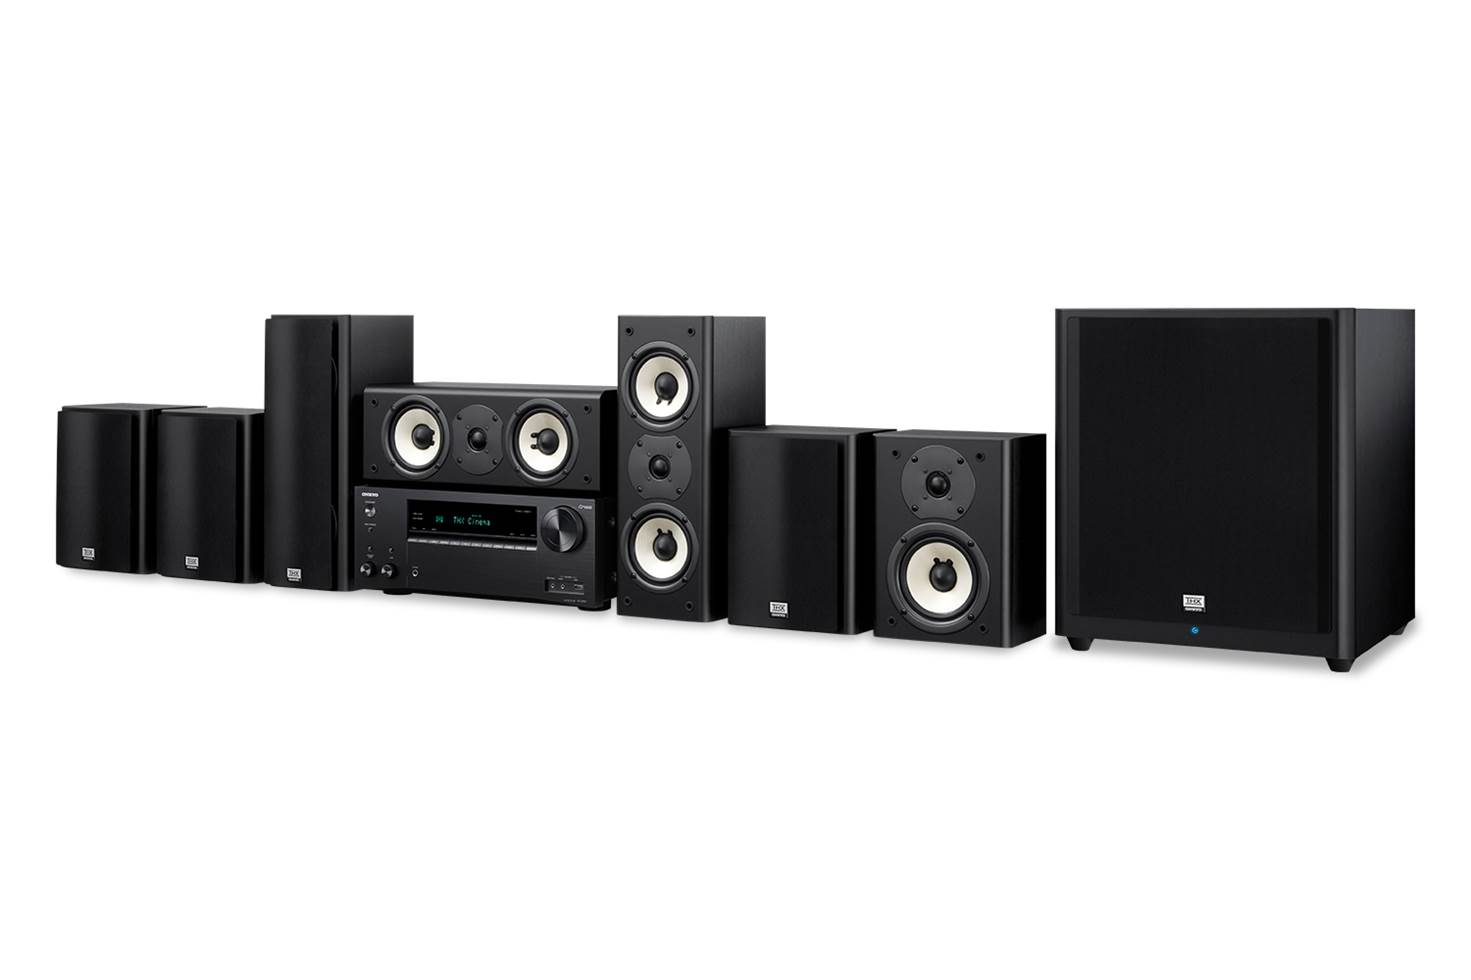 Onkyo 7.1 Home Theater in a Box System